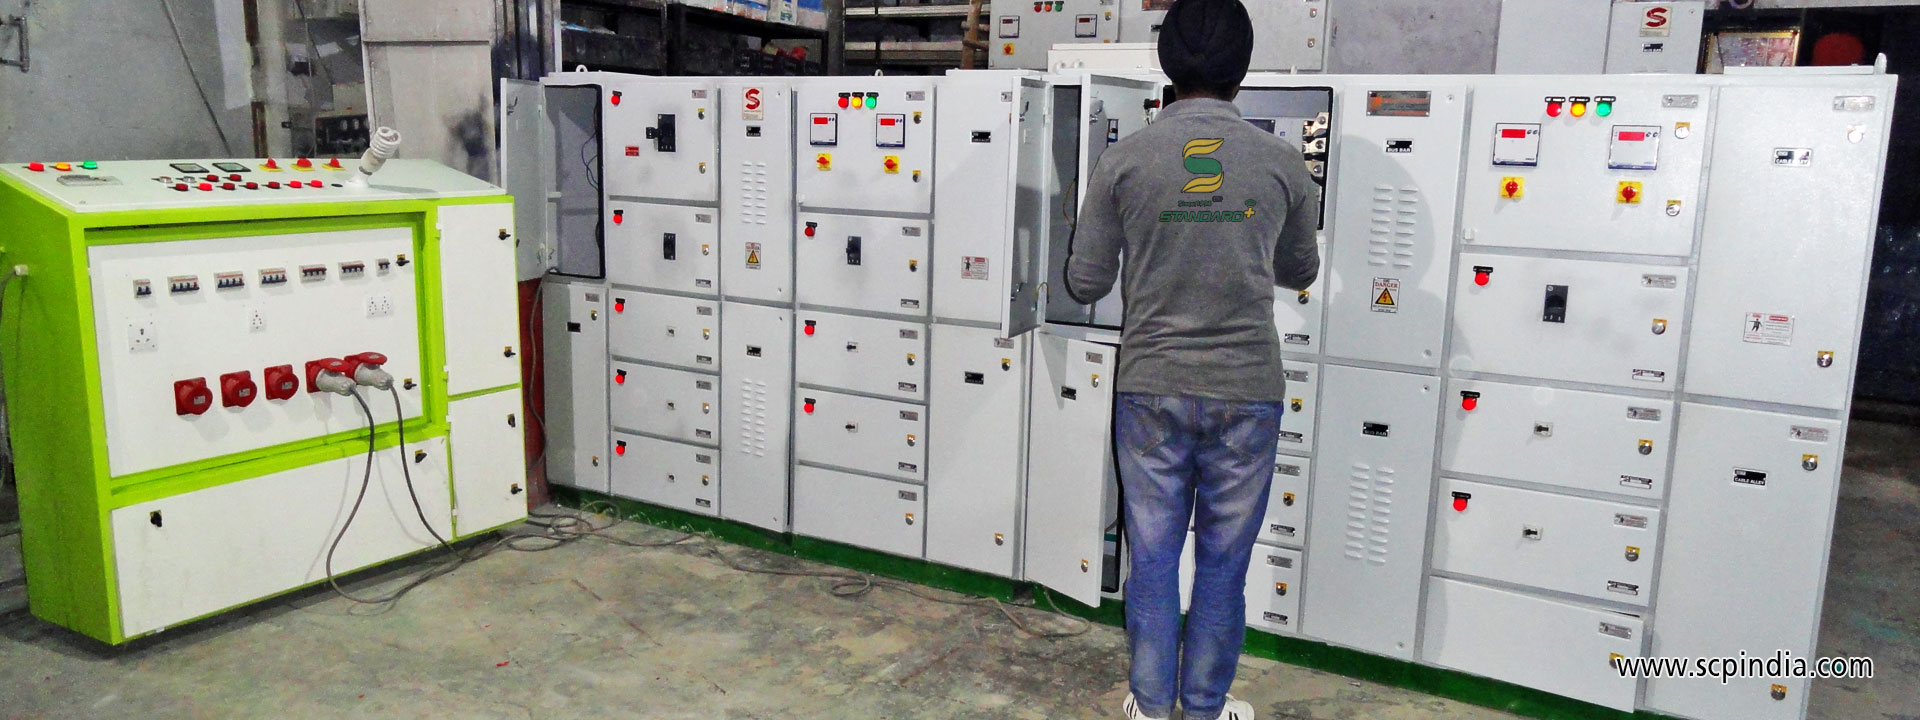 control panels manufacturers exporters companies in india punjab ludhiana